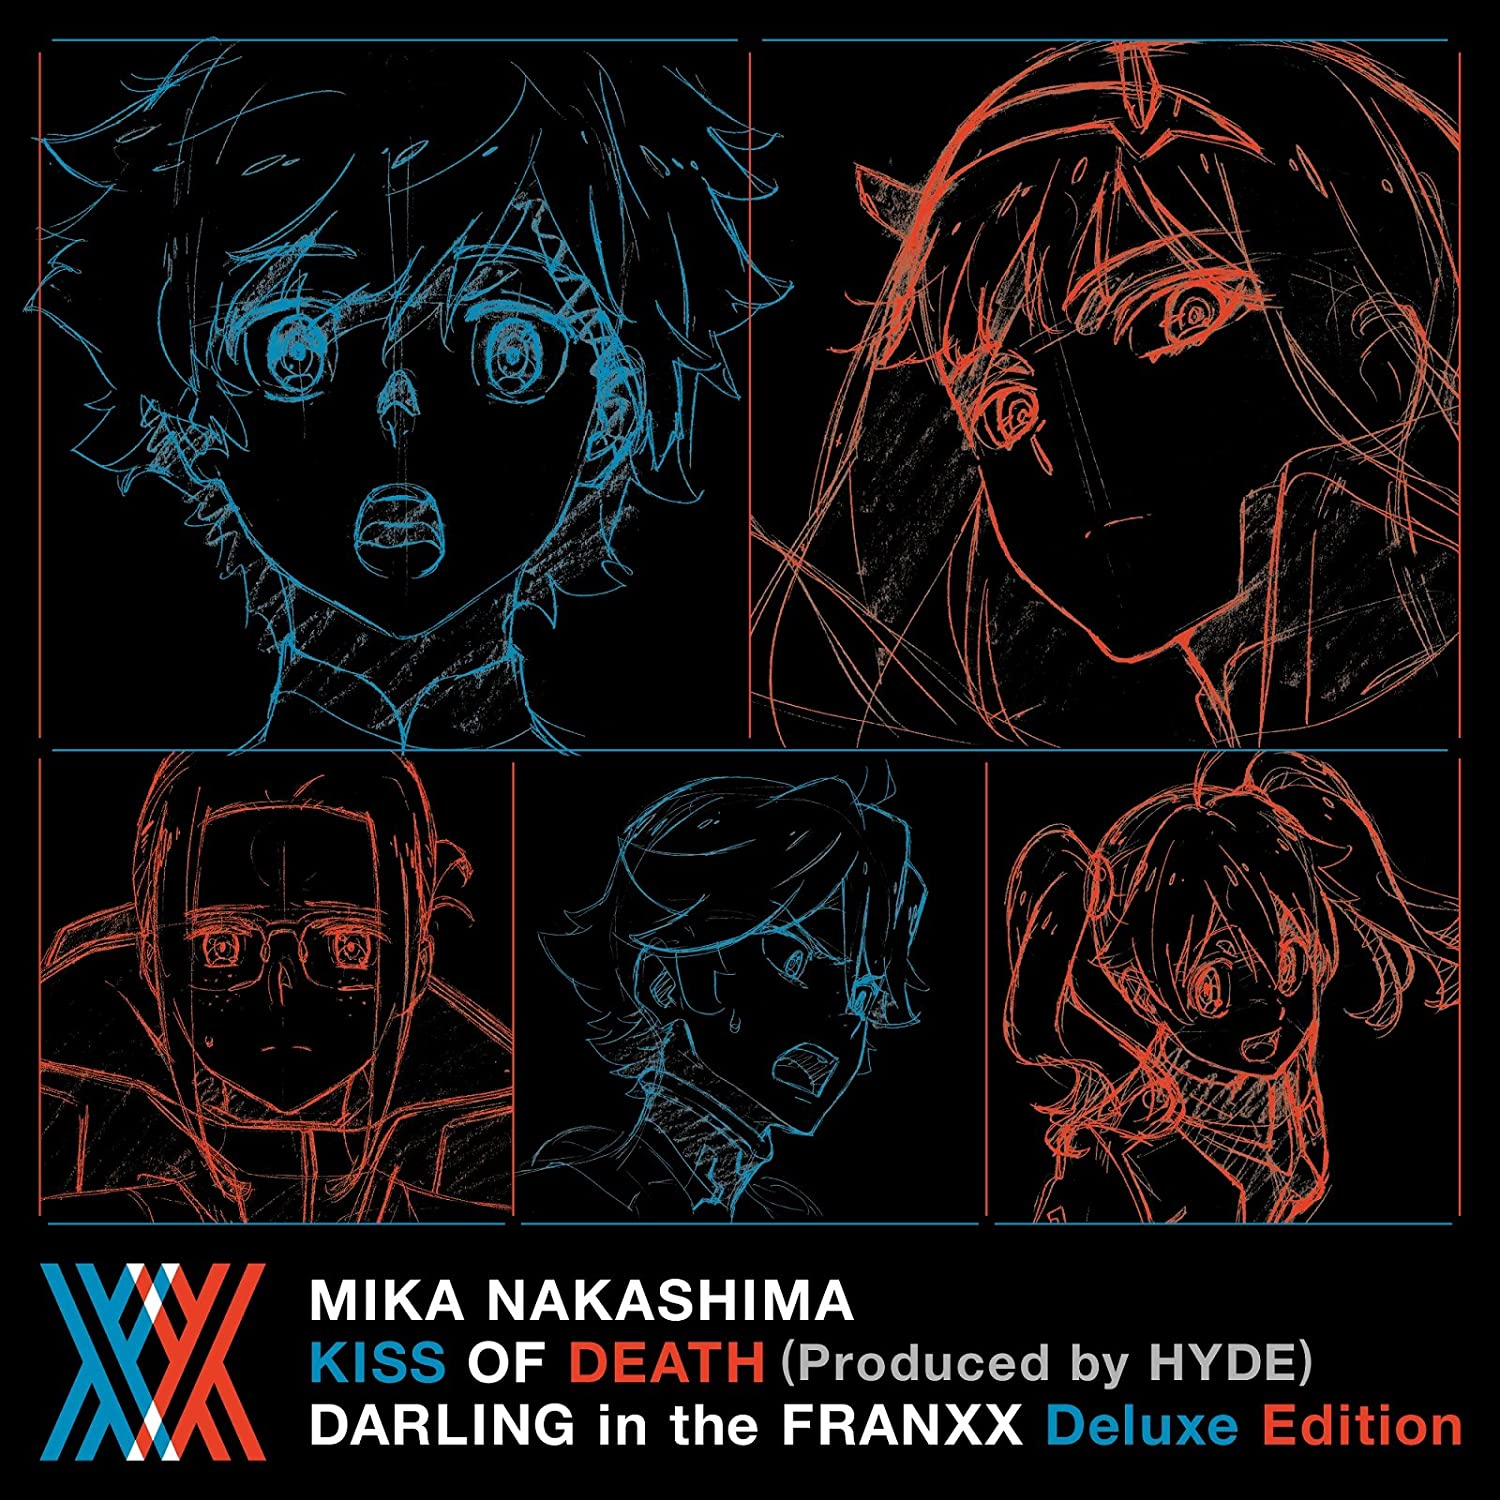 KISS OF DEATH(Produced by HYDE) ダーリン・イン・ザ・フランキス Deluxe Edition(完全生産限定アニメ盤)(Blu-ray Disc付) Single, CD+Blu-ray, Limited Edition, Maxi